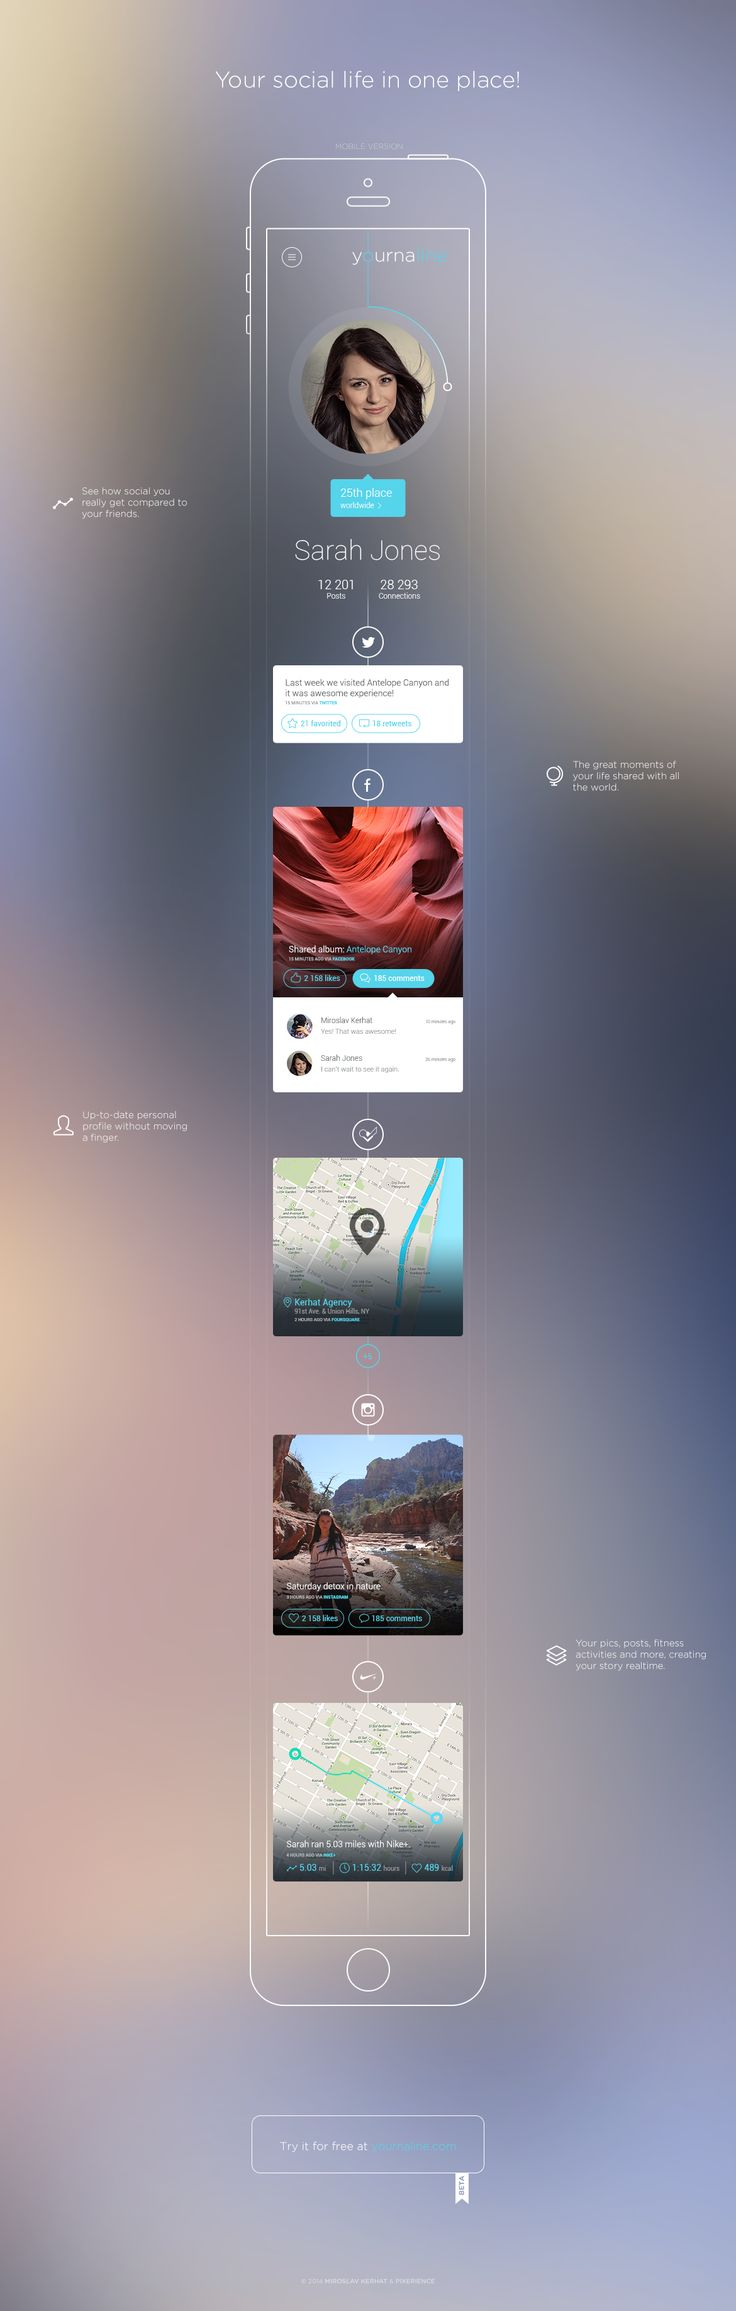 144 best Mobile App Presentation images on Pinterest